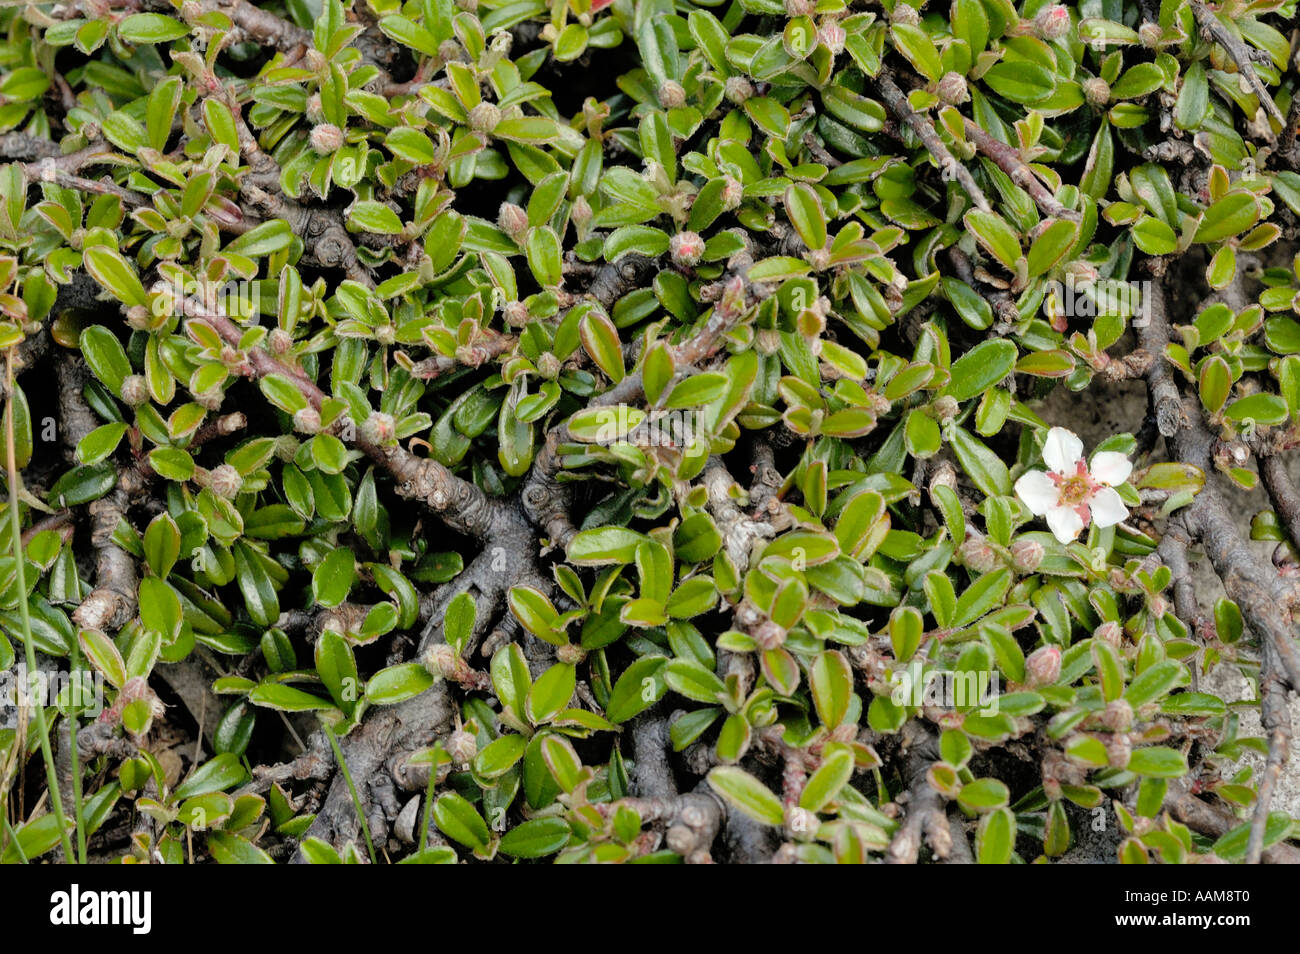 Entire-leaved Cotoneaster, Cotoneaster integrifolius - Stock Image